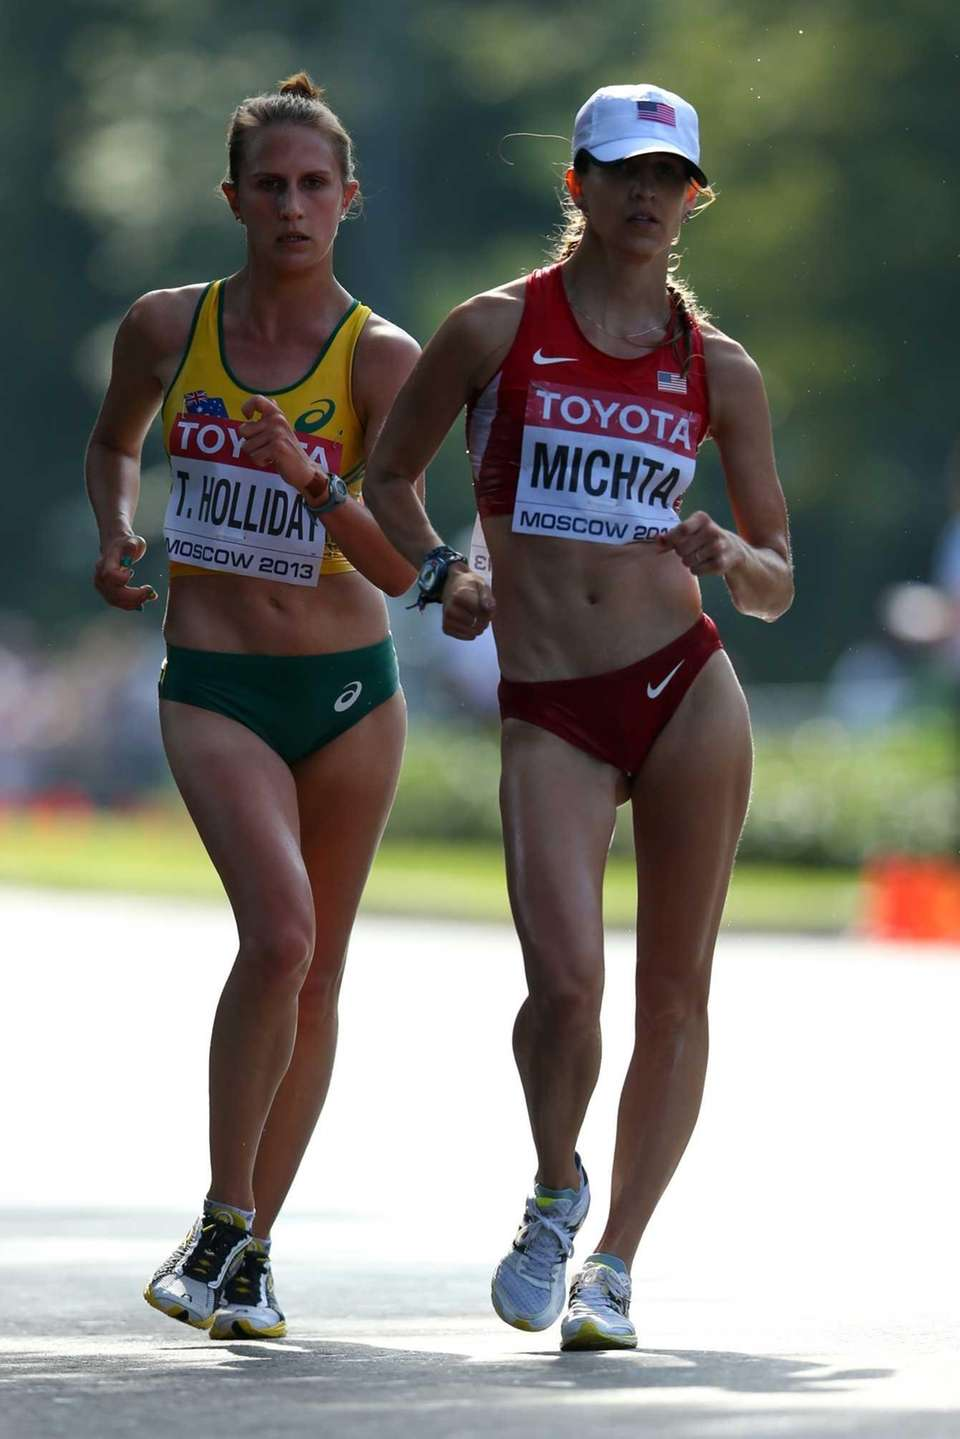 Tanya Holliday of Australia and Maria Michta of